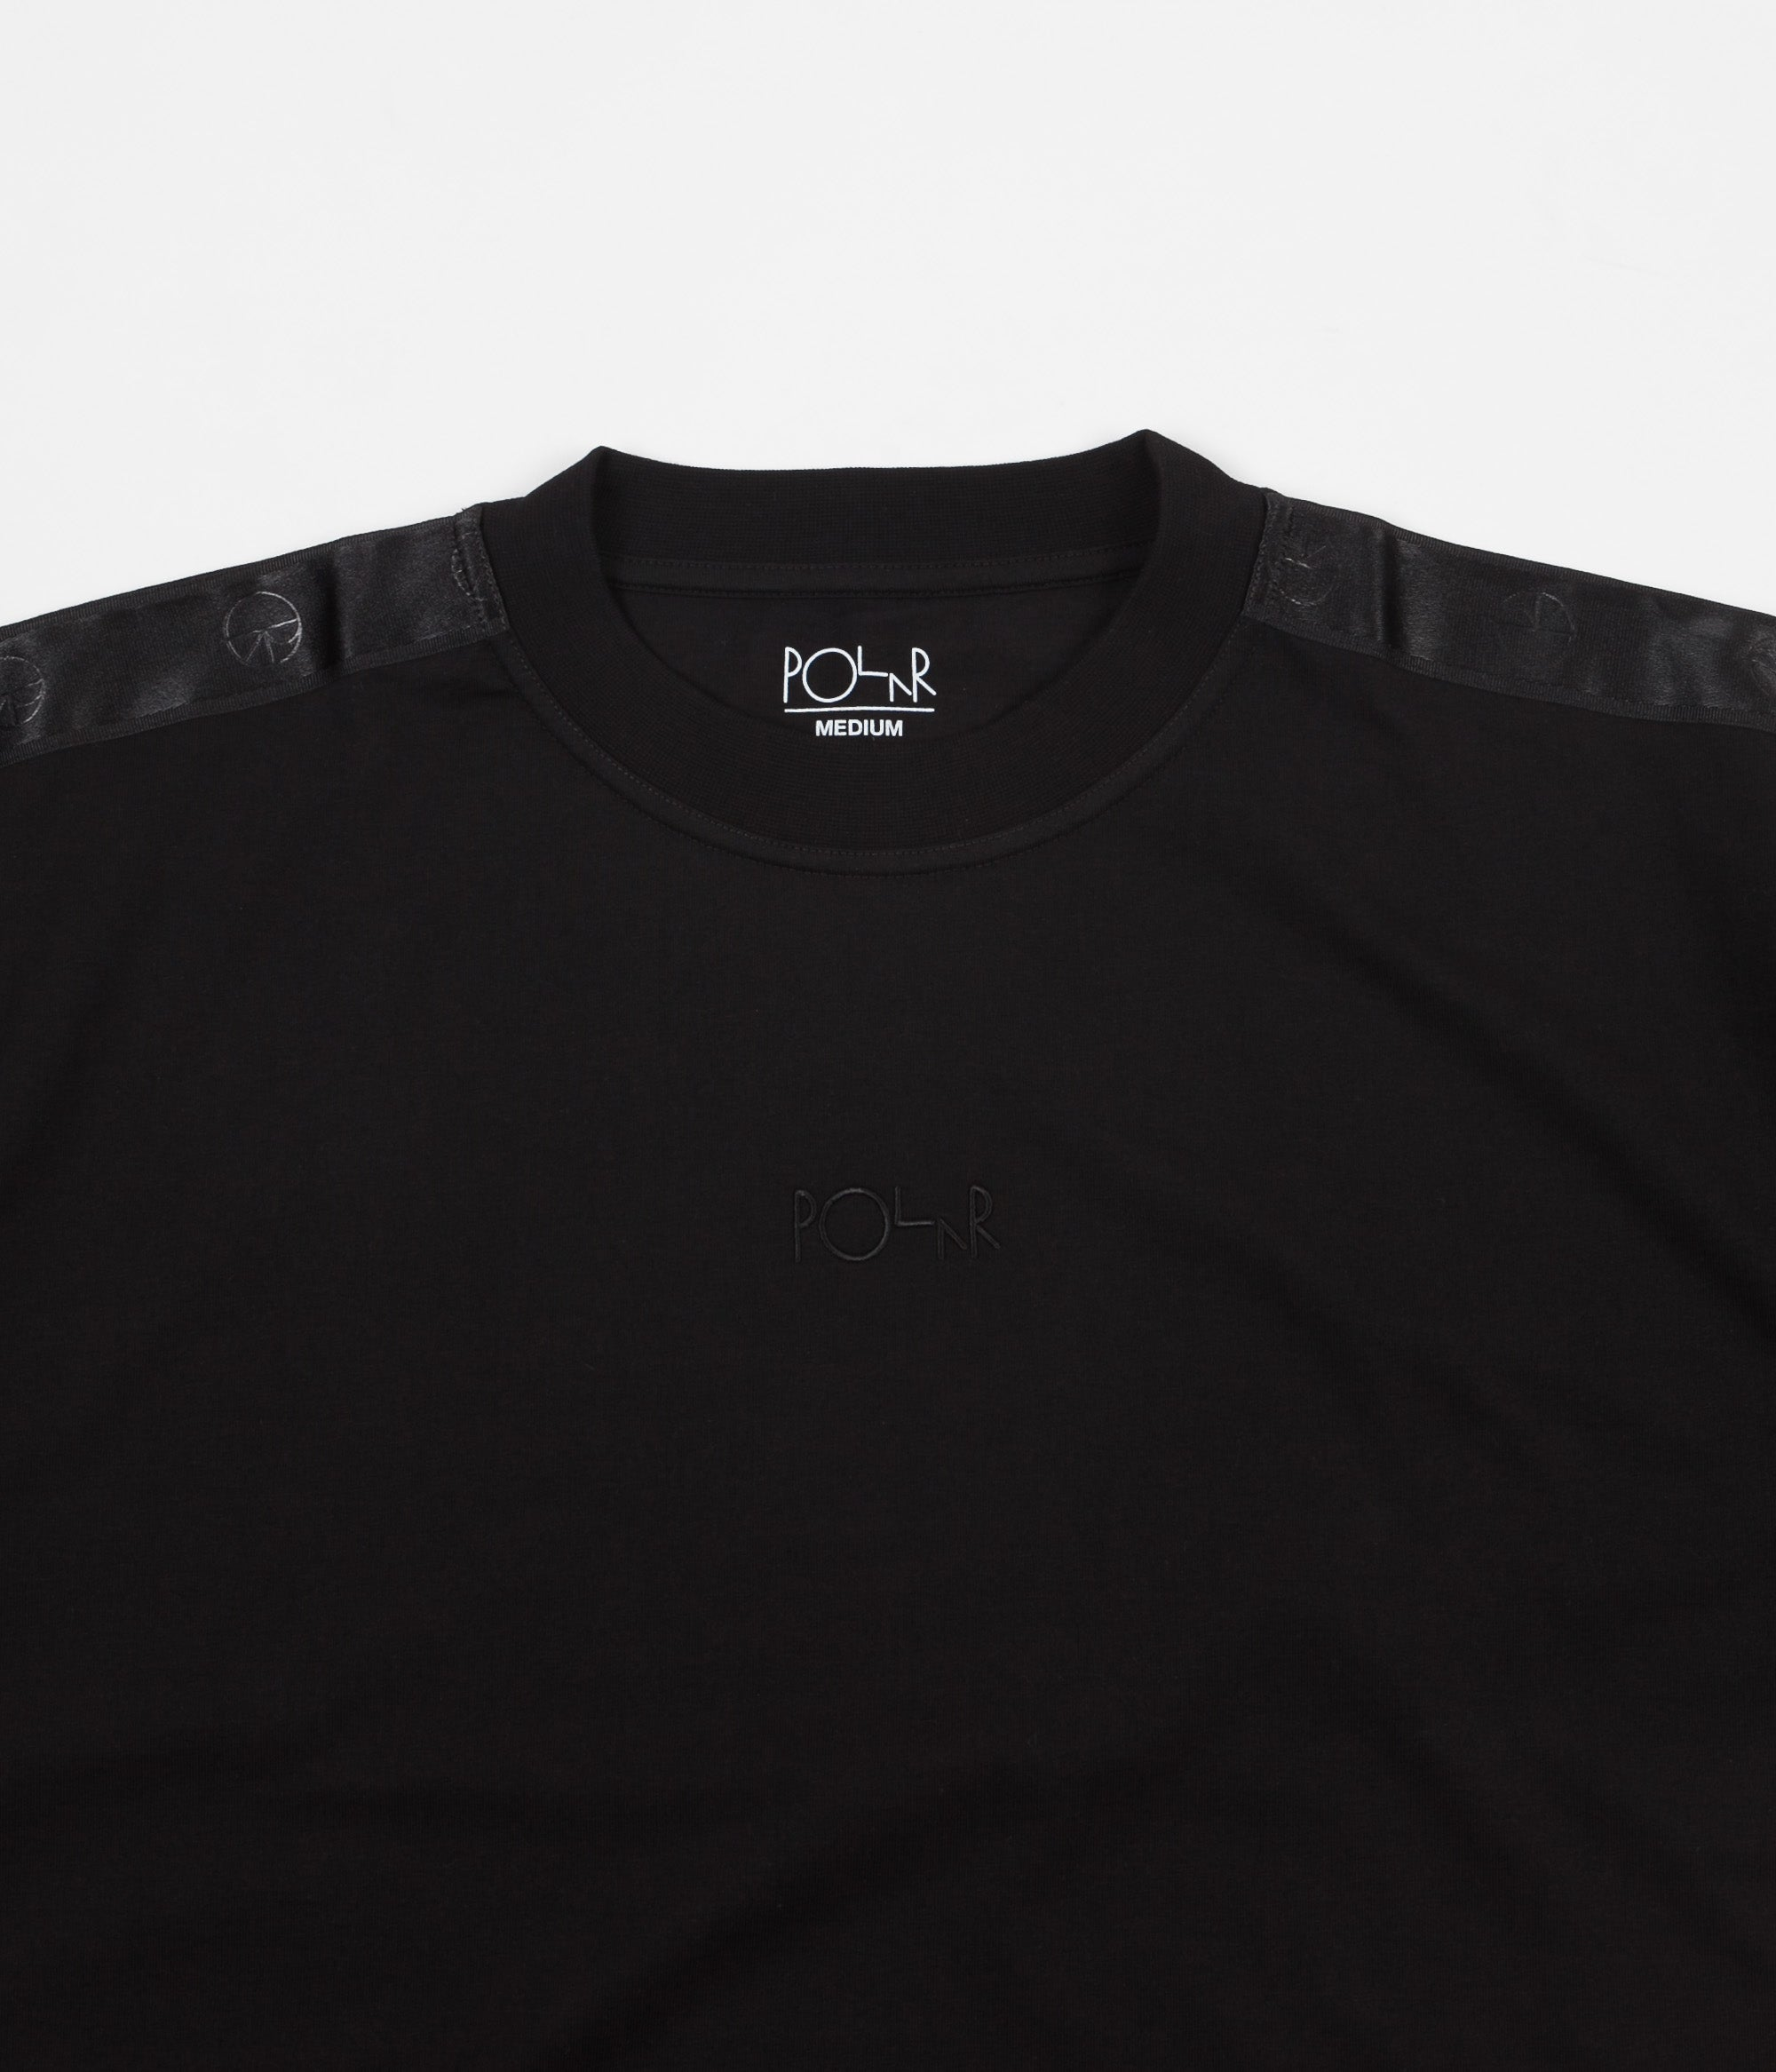 Polar Tape Surf T-Shirt - Black / Black